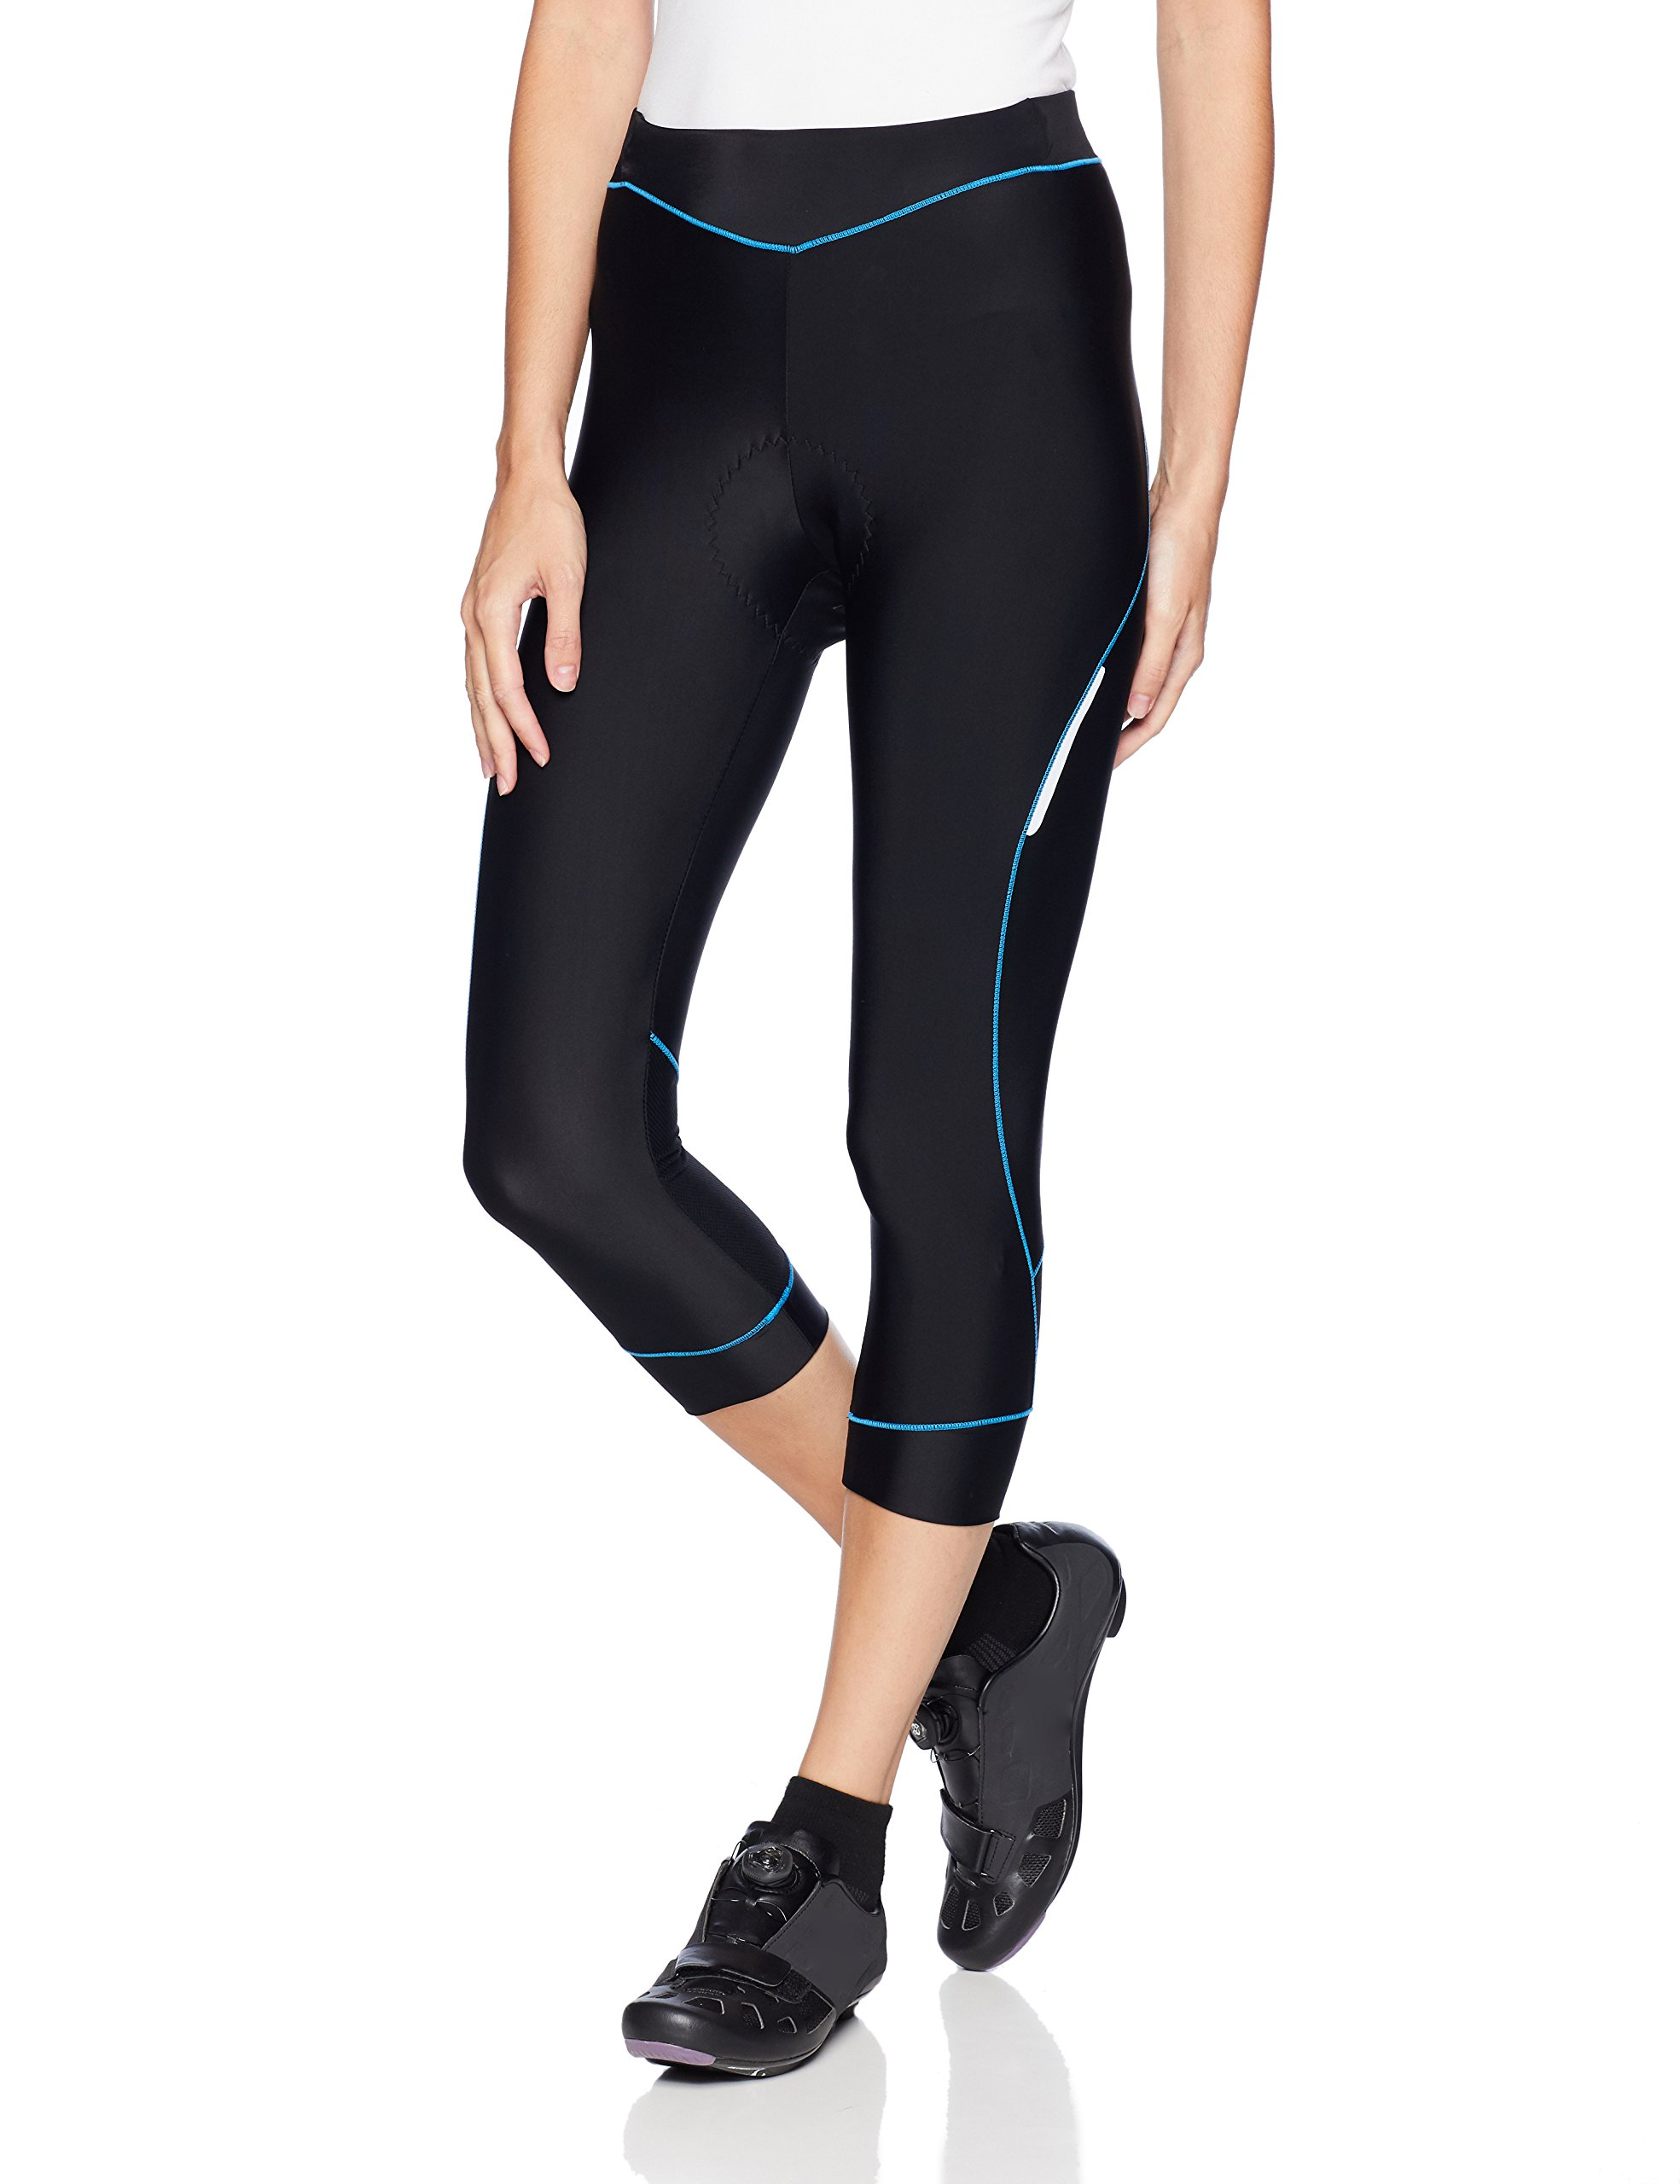 4ucycling Women Premium 3D Padded Breathable ¾ Cycling Tights ,Women's Running Pants ;Women's Recreation Pants